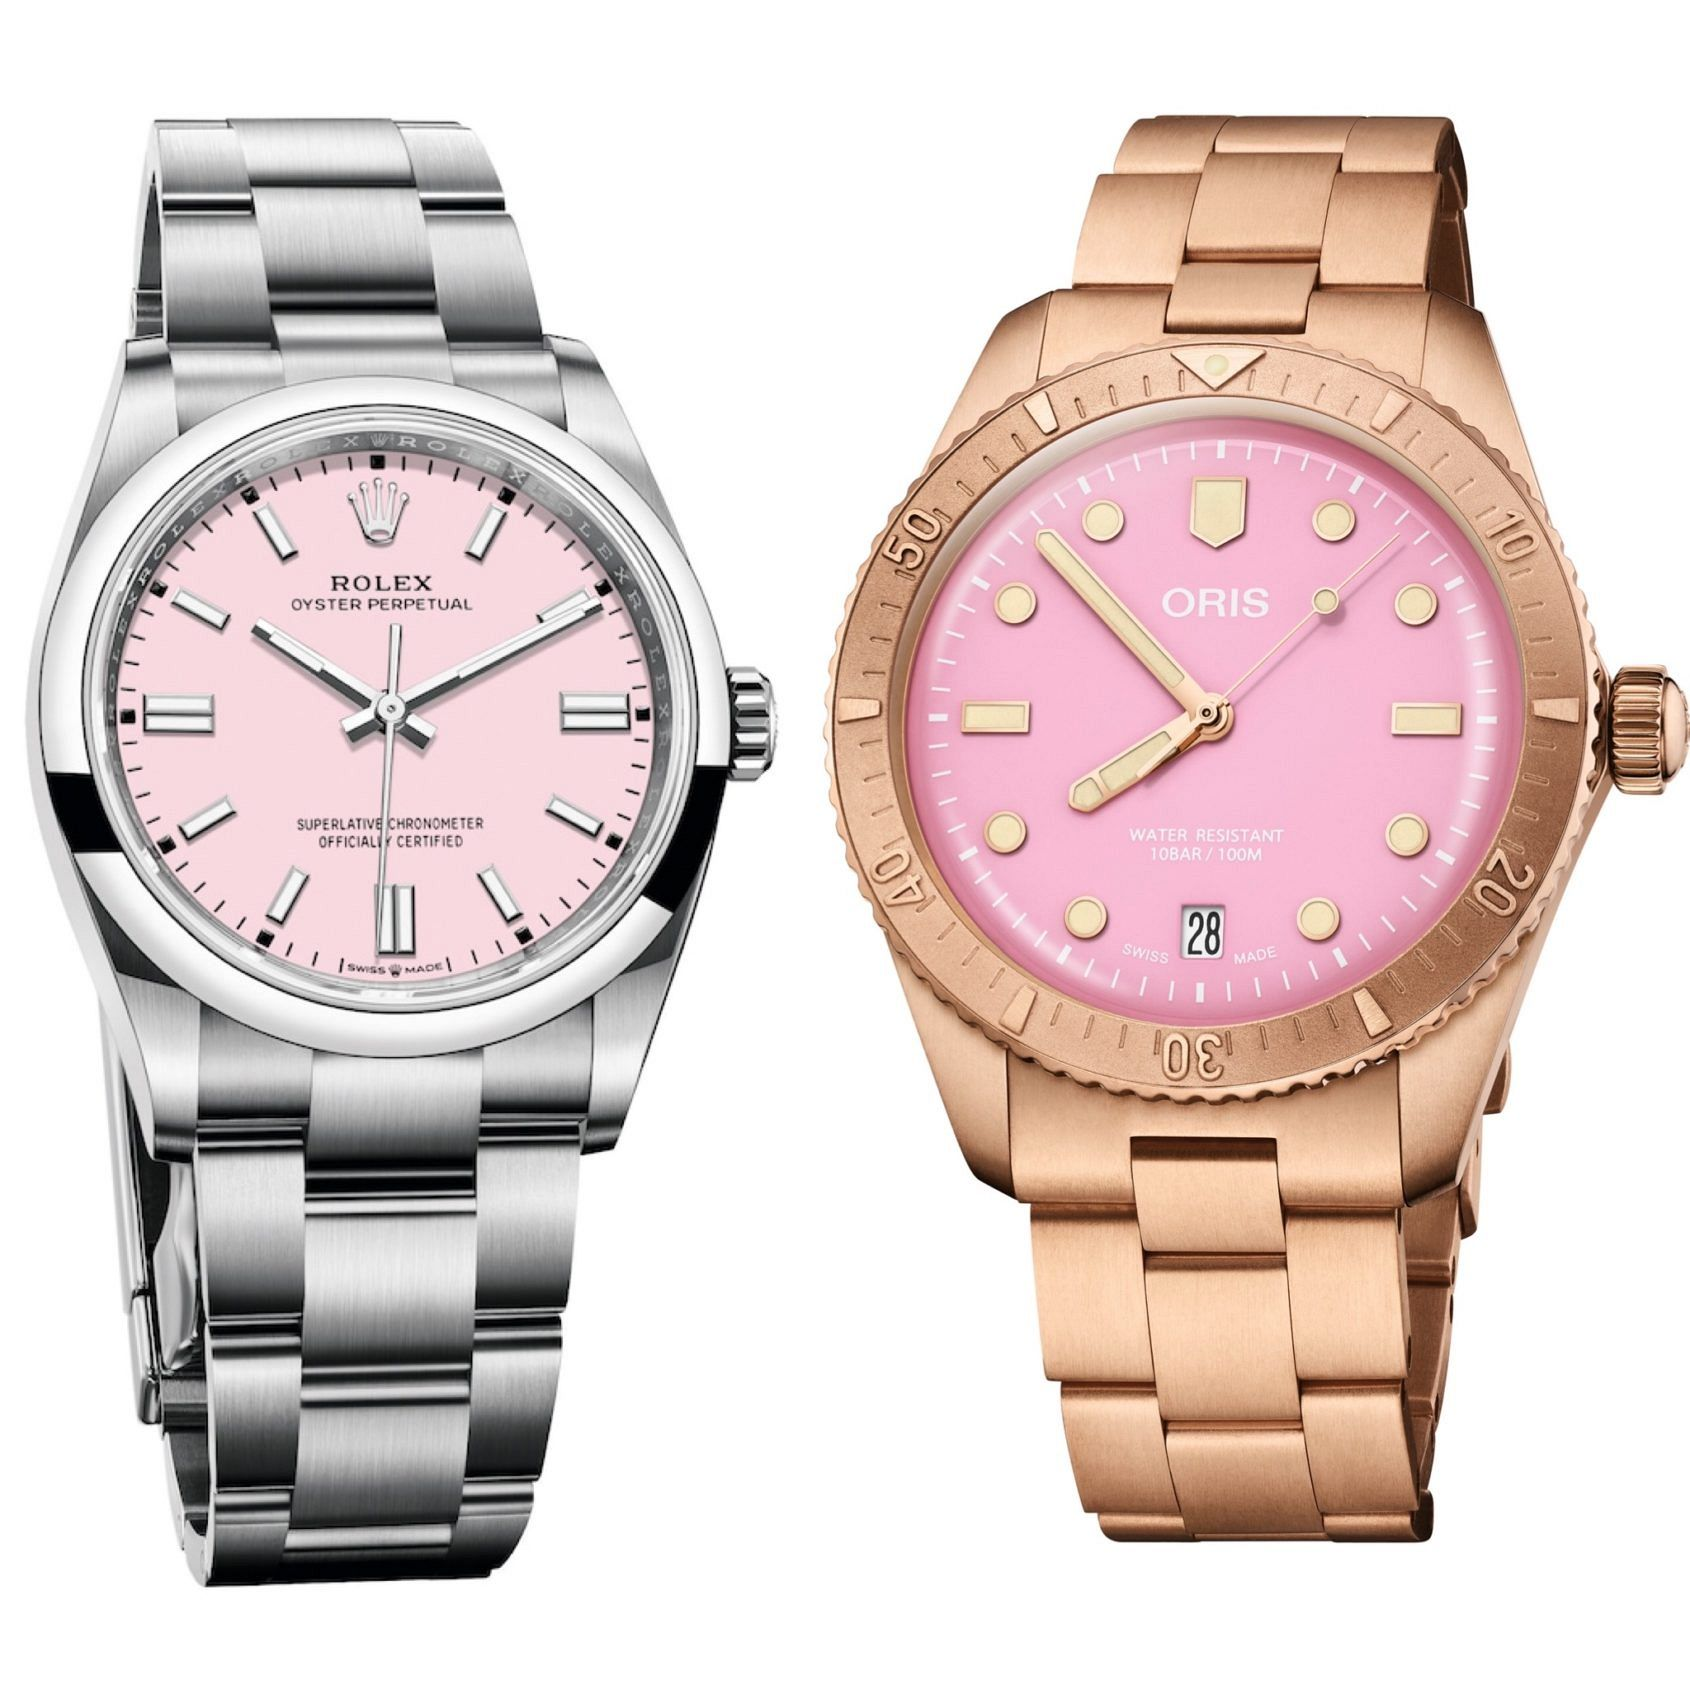 Candy comparison: How do the Oris Cotton Candy and Rolex OP dials compare?